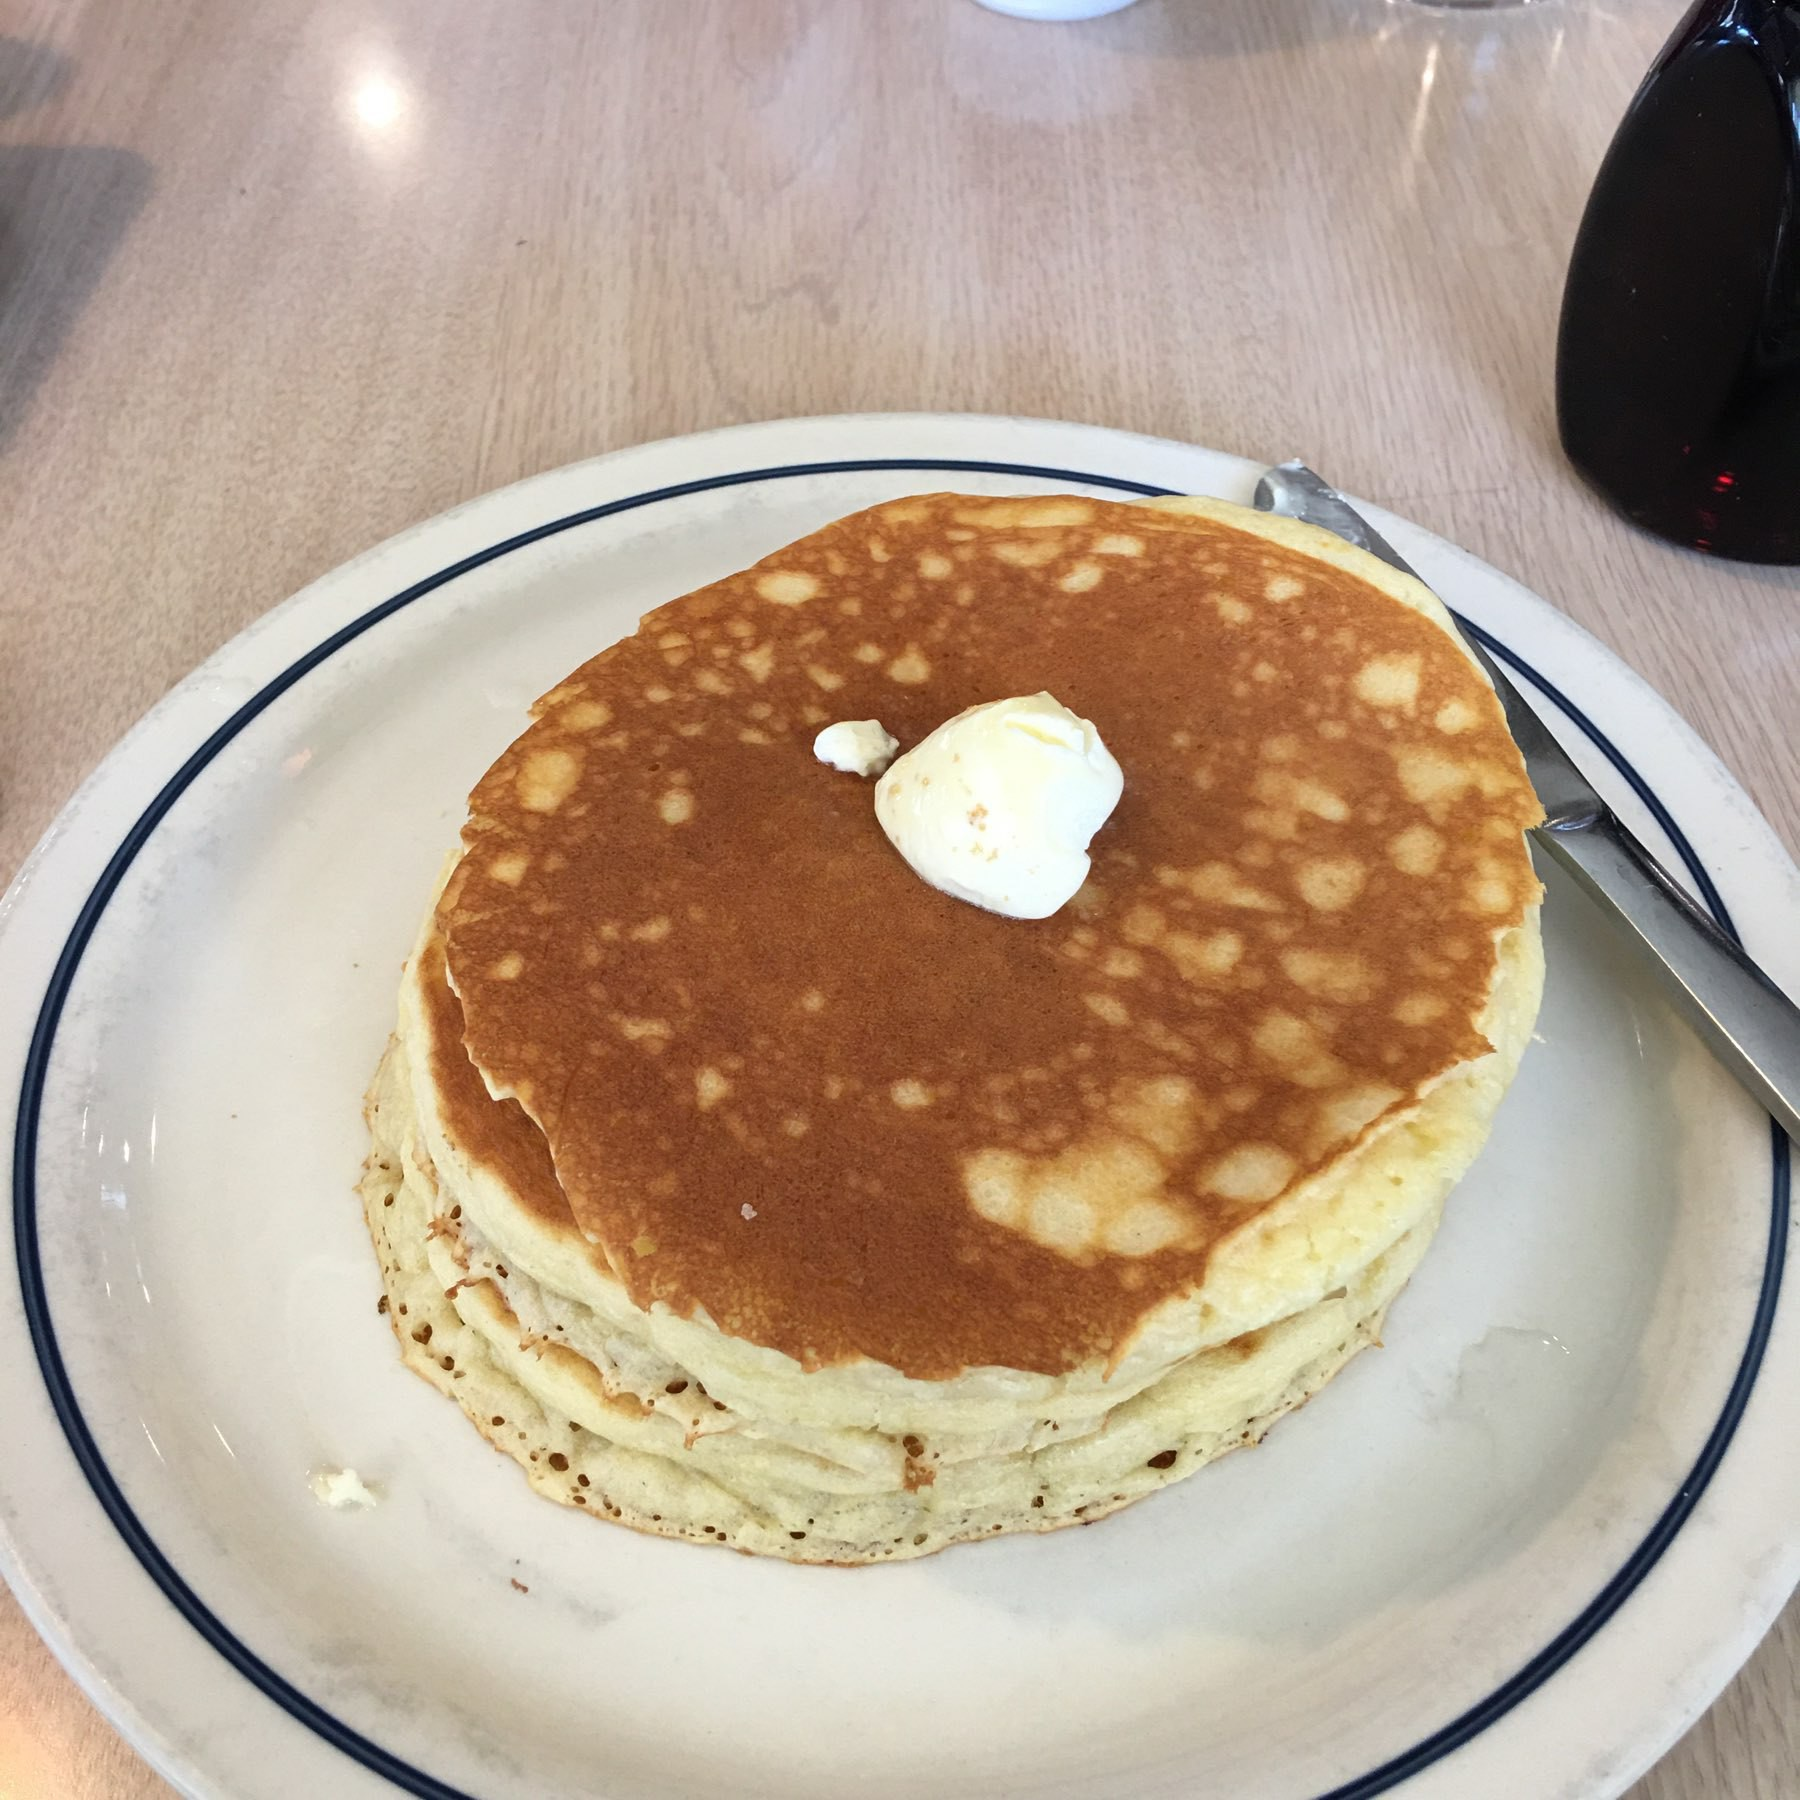 A short stack of pancakes.